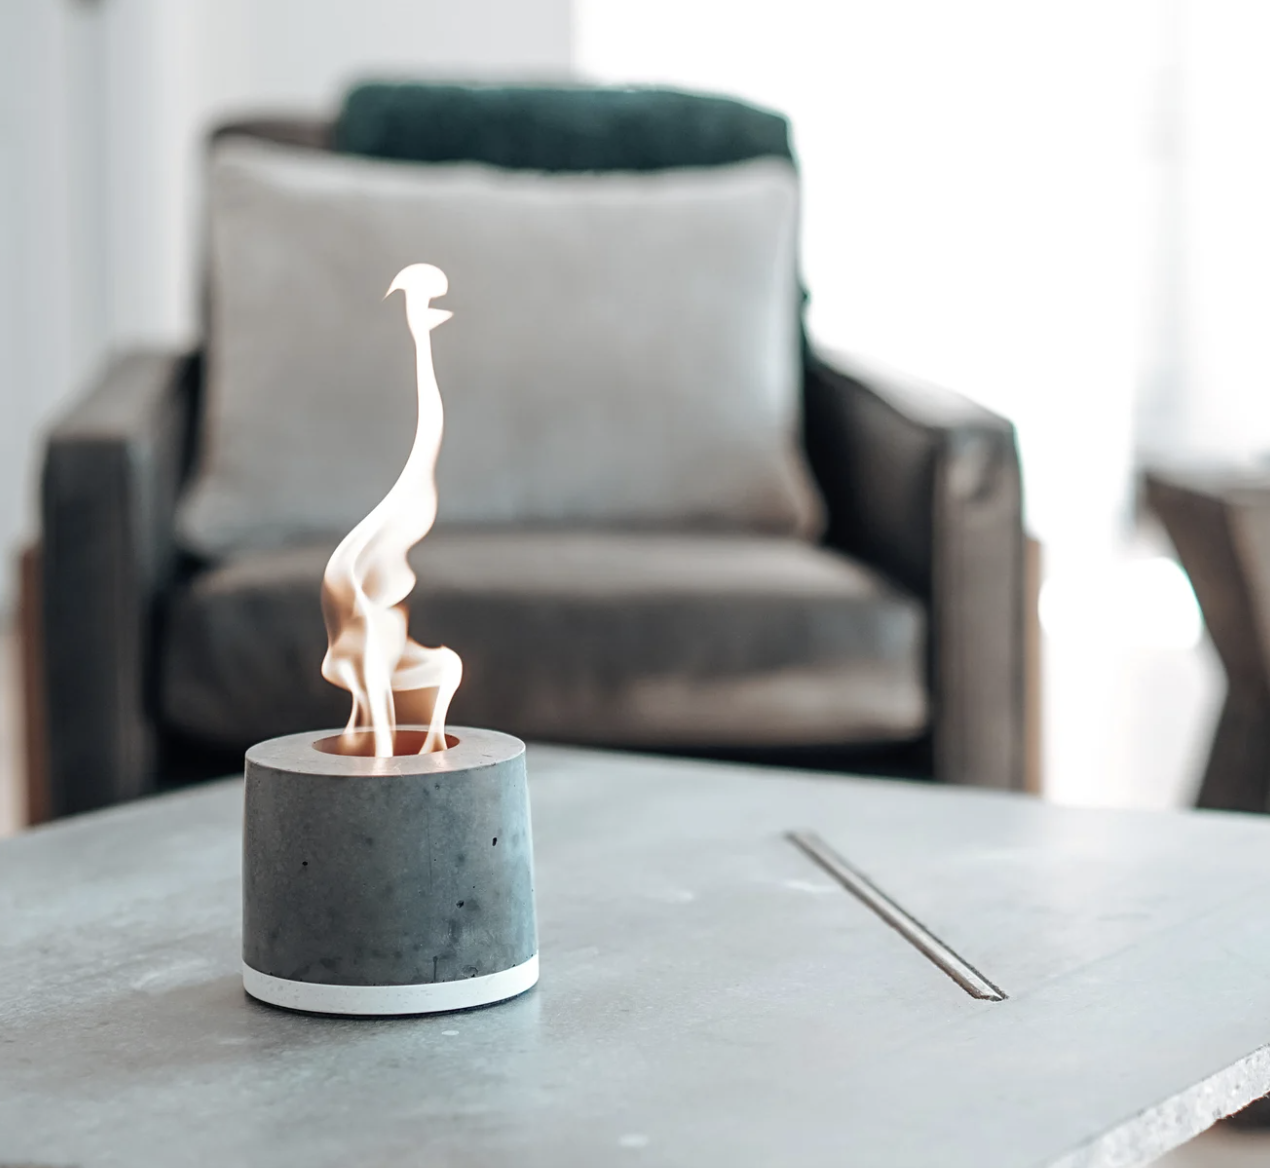 a concrete fireplace with a tiny flame